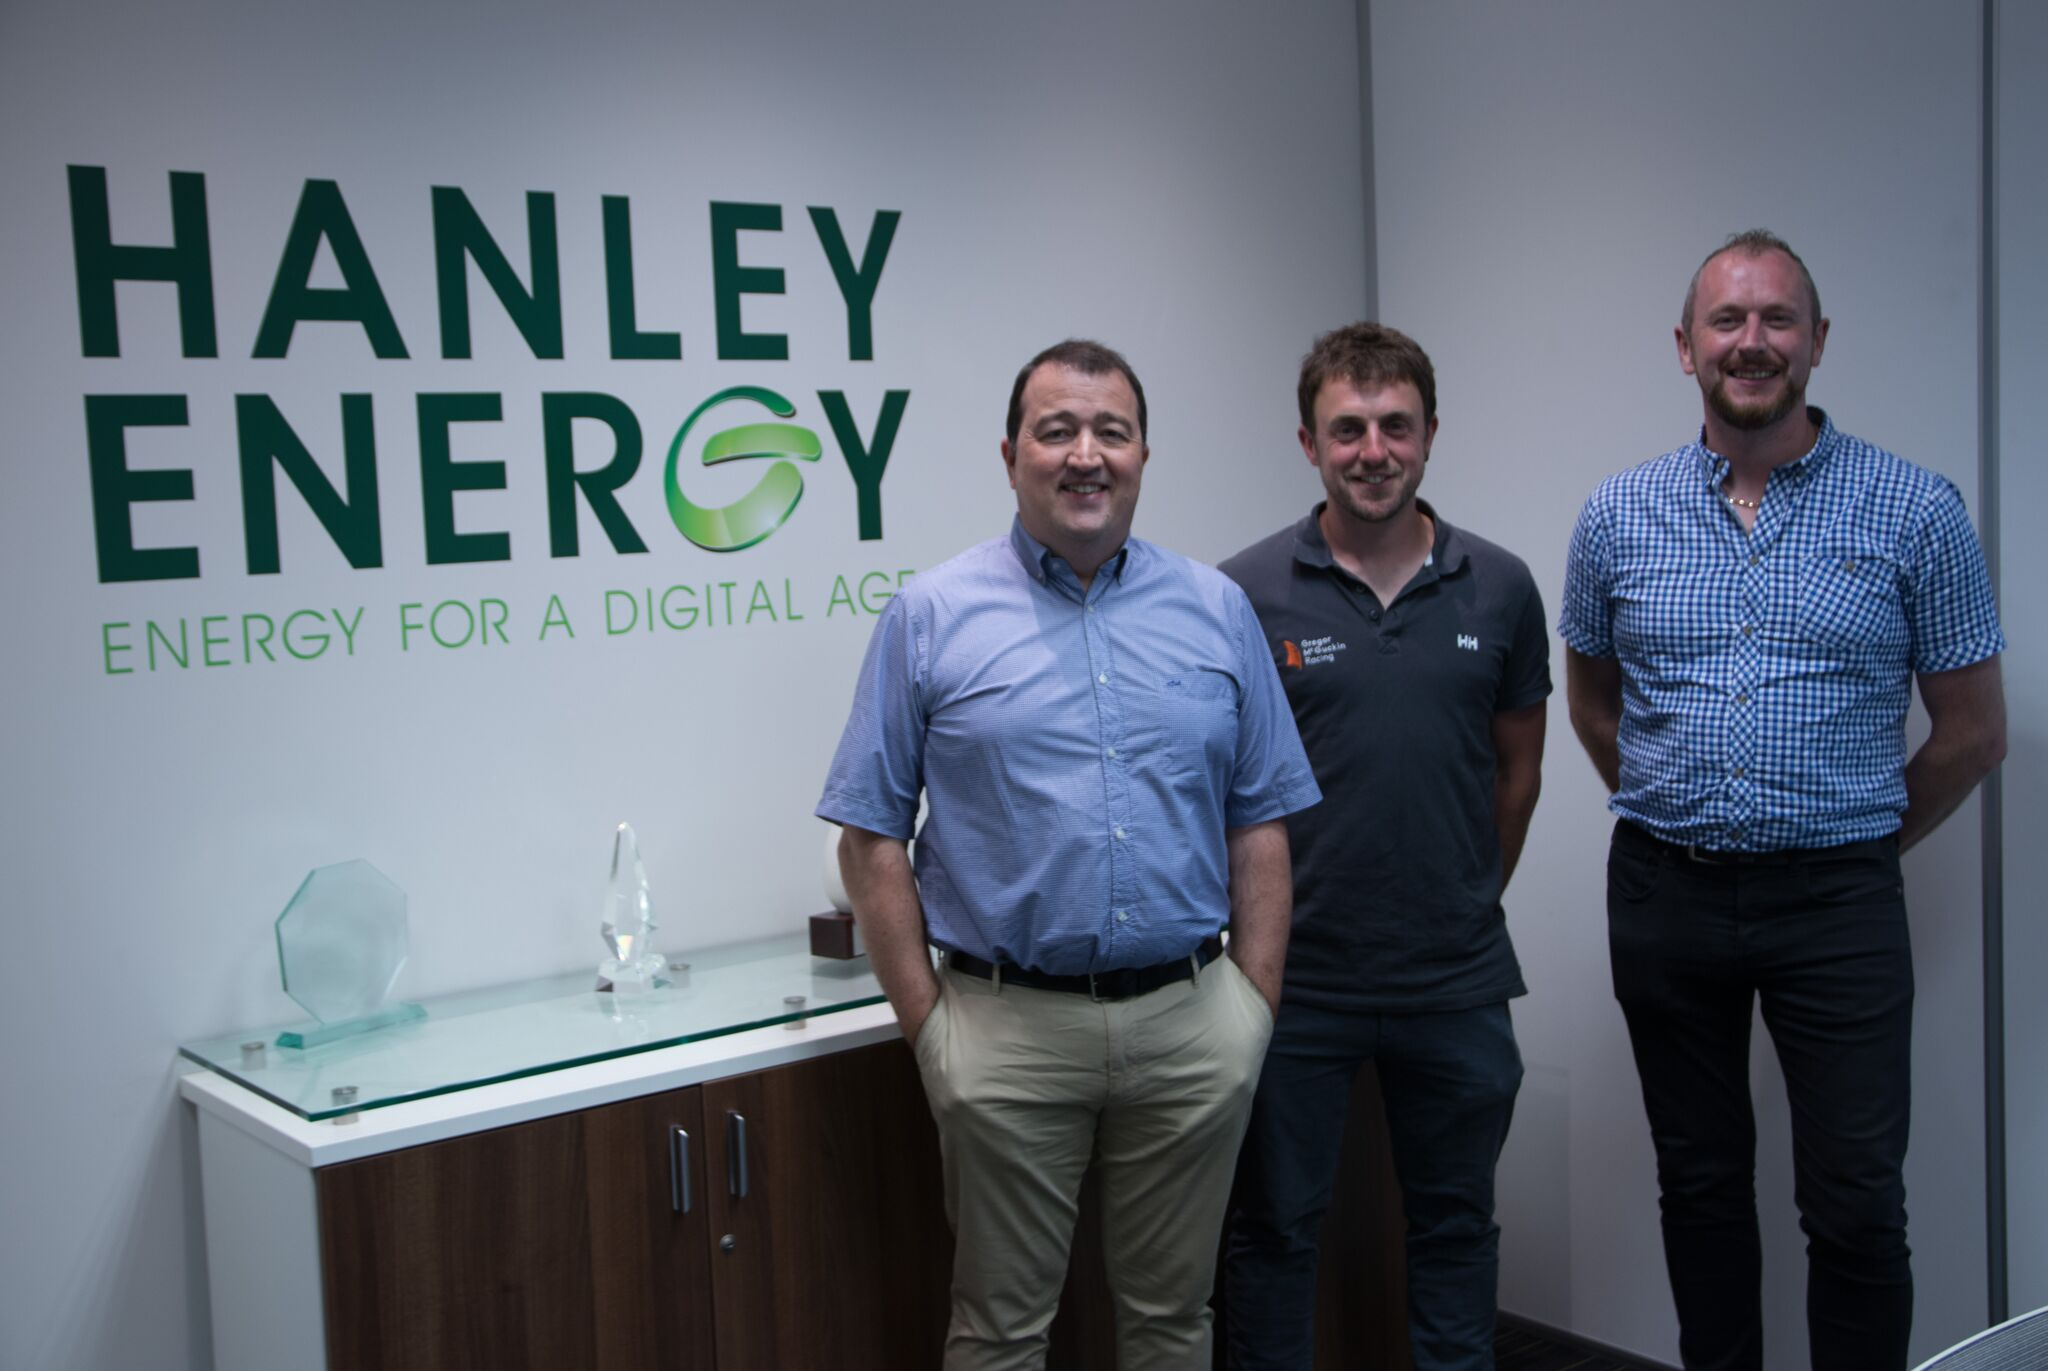 Pictured L-R. Dennis Nordon (Managing Director and co-founder at Hanley Energy), Gregor McGuckin (Irish solo sailor) and Edward Pepper (Operations Manager at Hanley Energy))